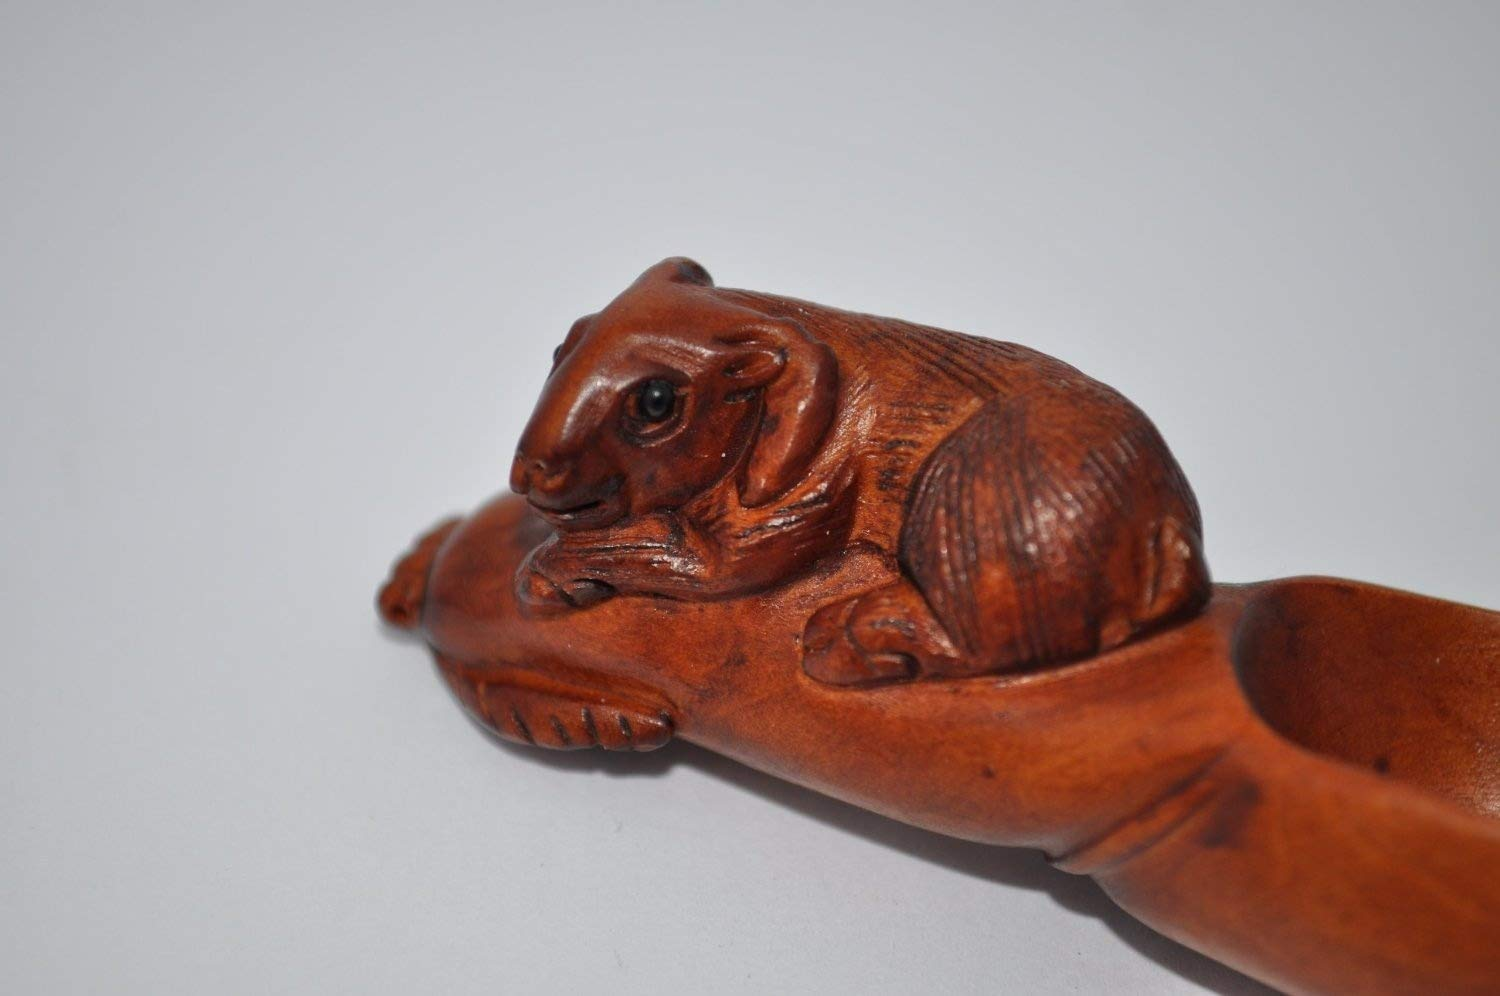 Boxwood tea scoop with a Goat carved on the handle